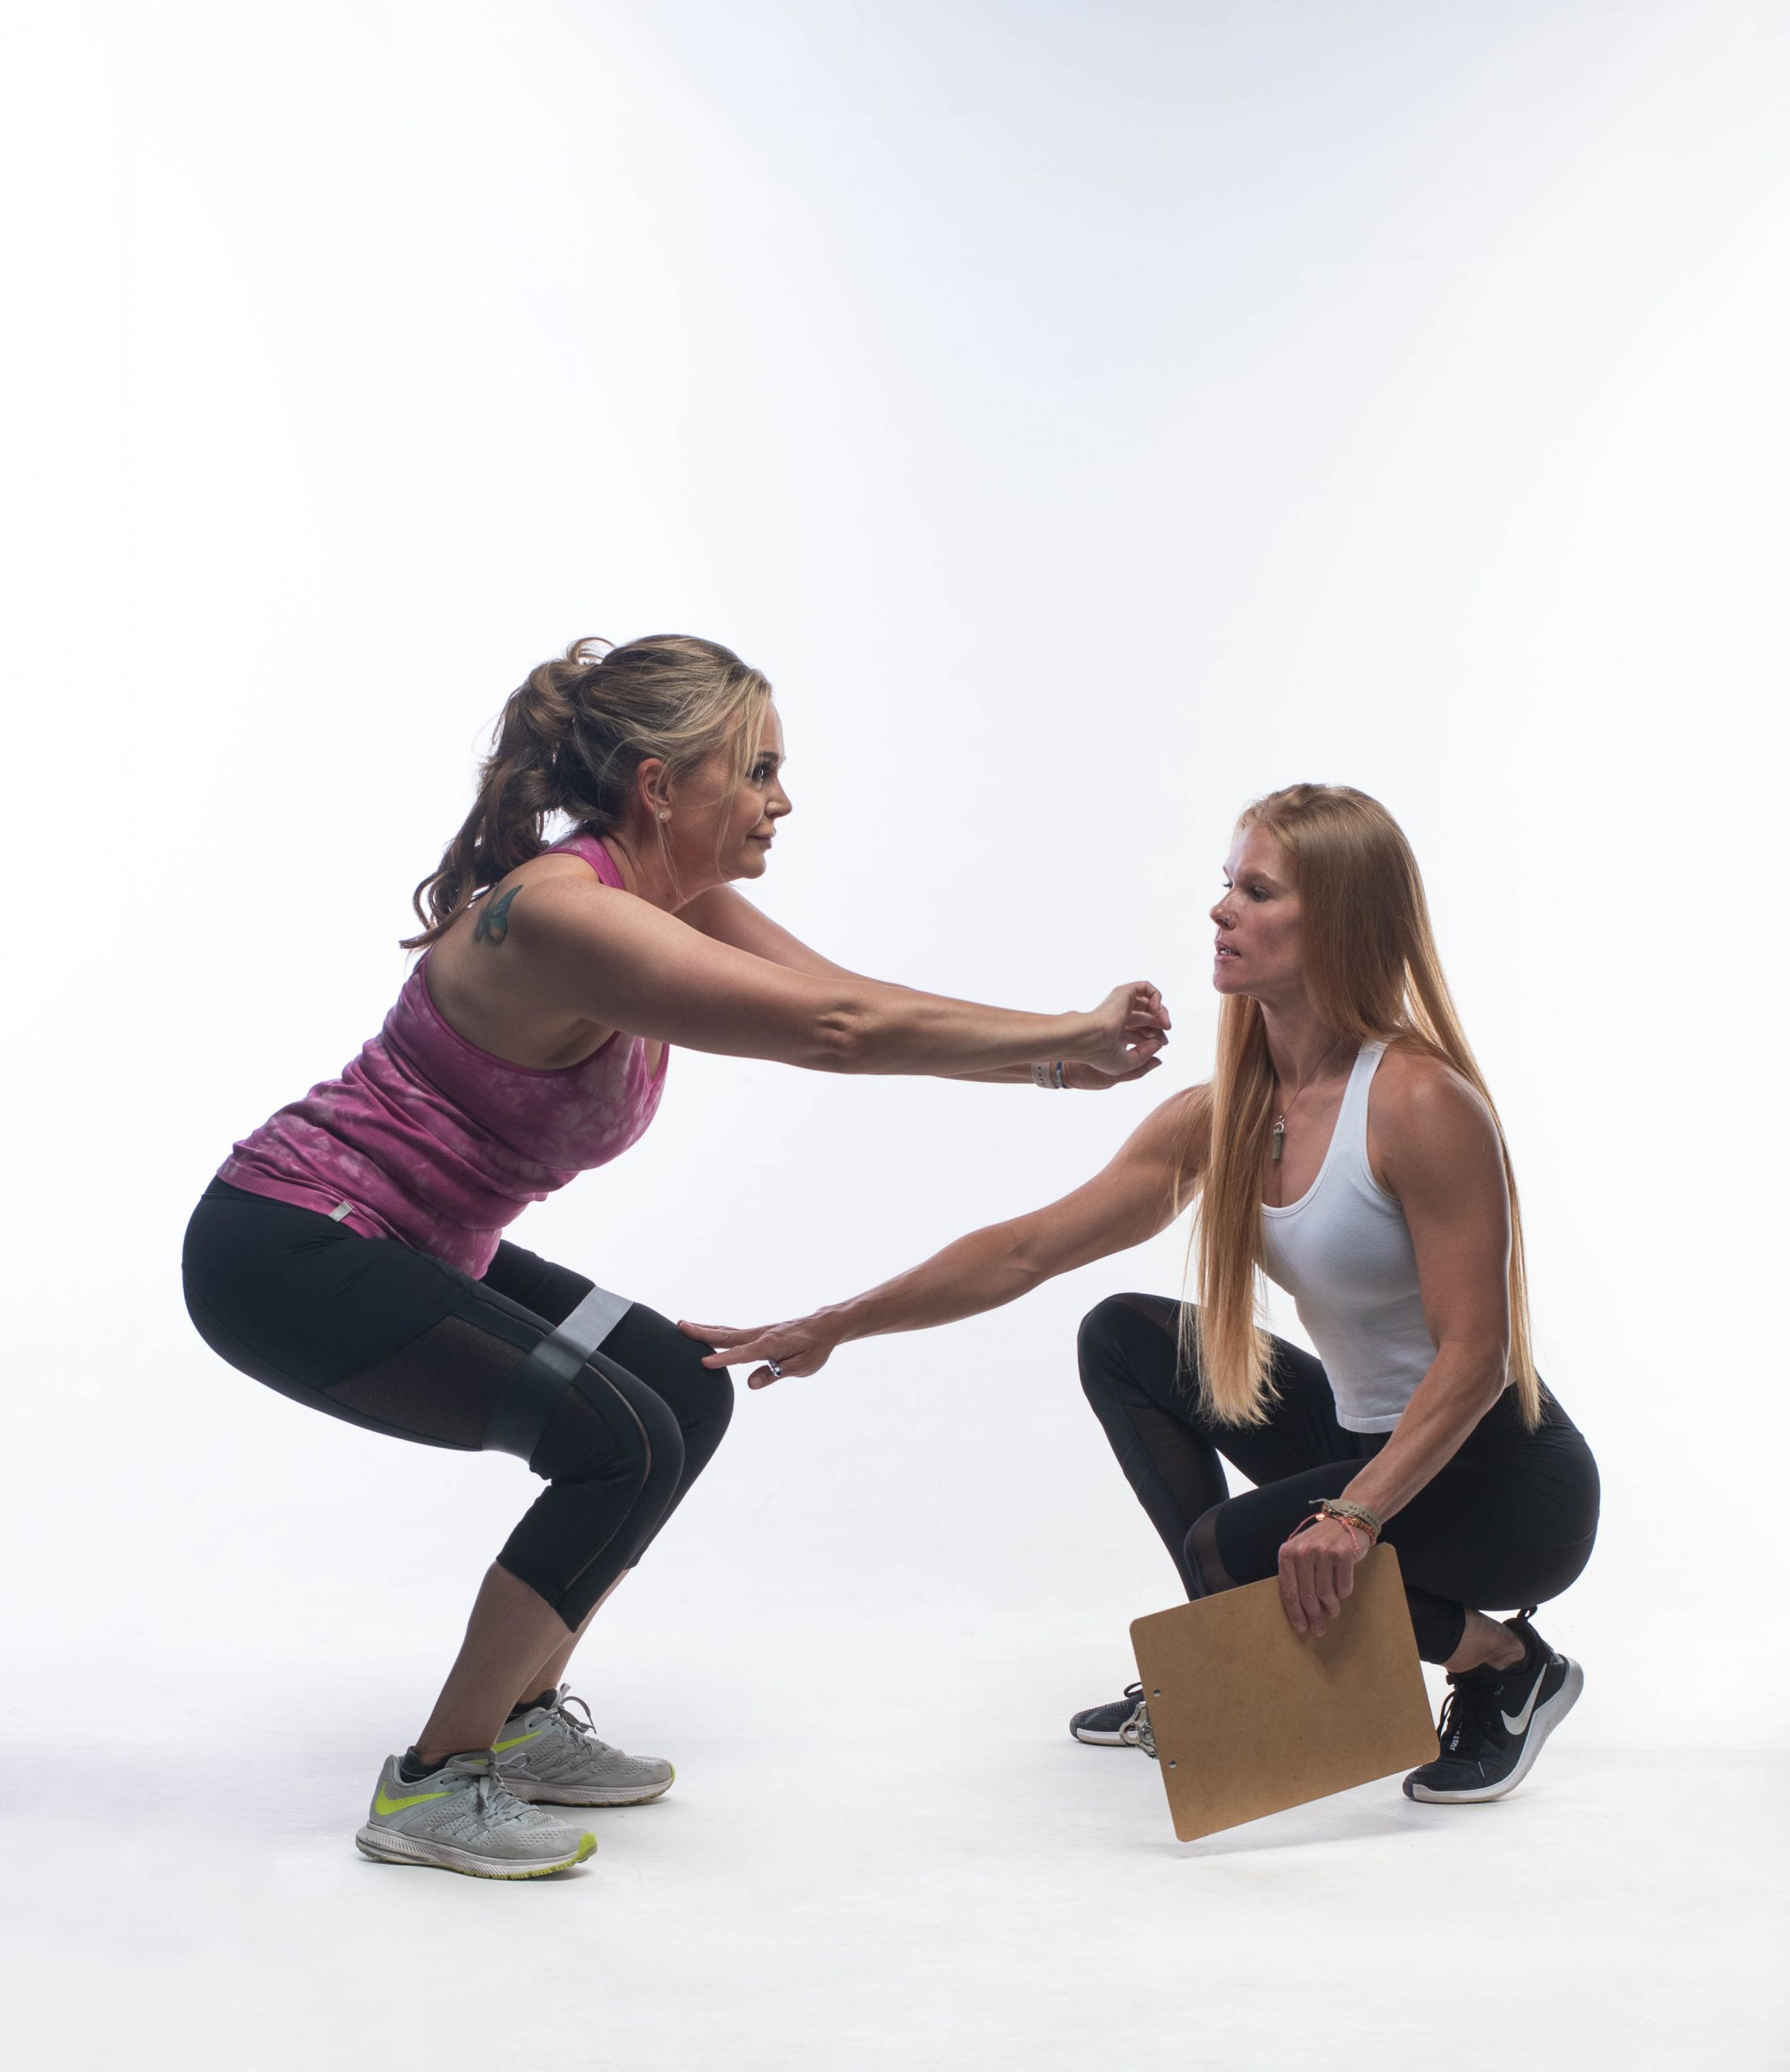 Colorado Springs personal trainer